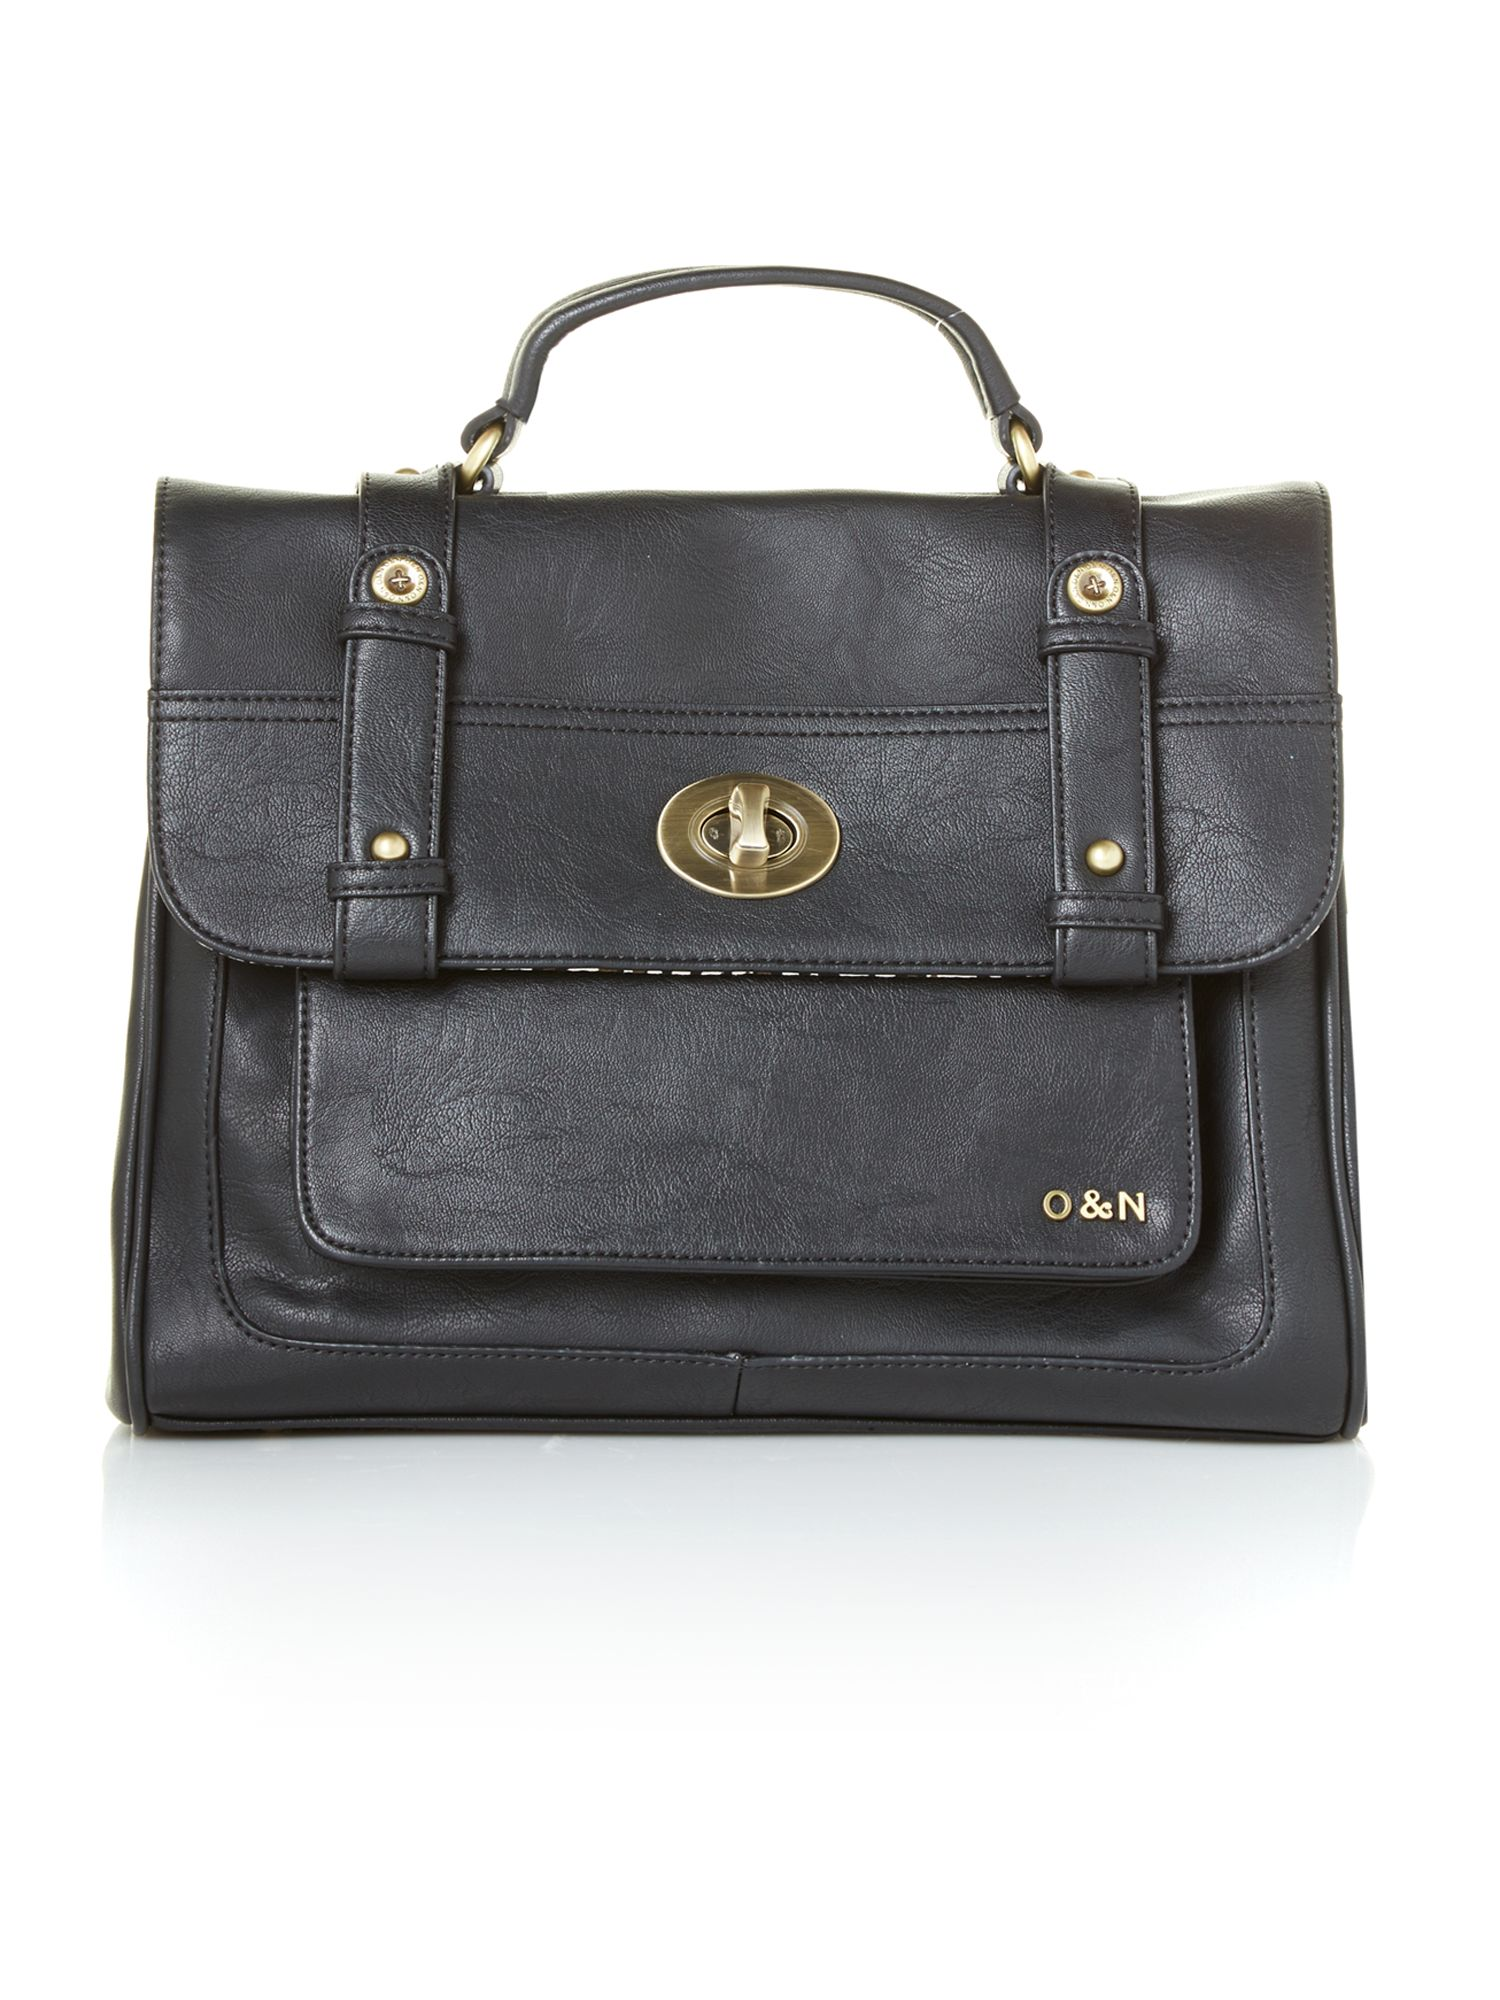 Hugo black large satchel bag